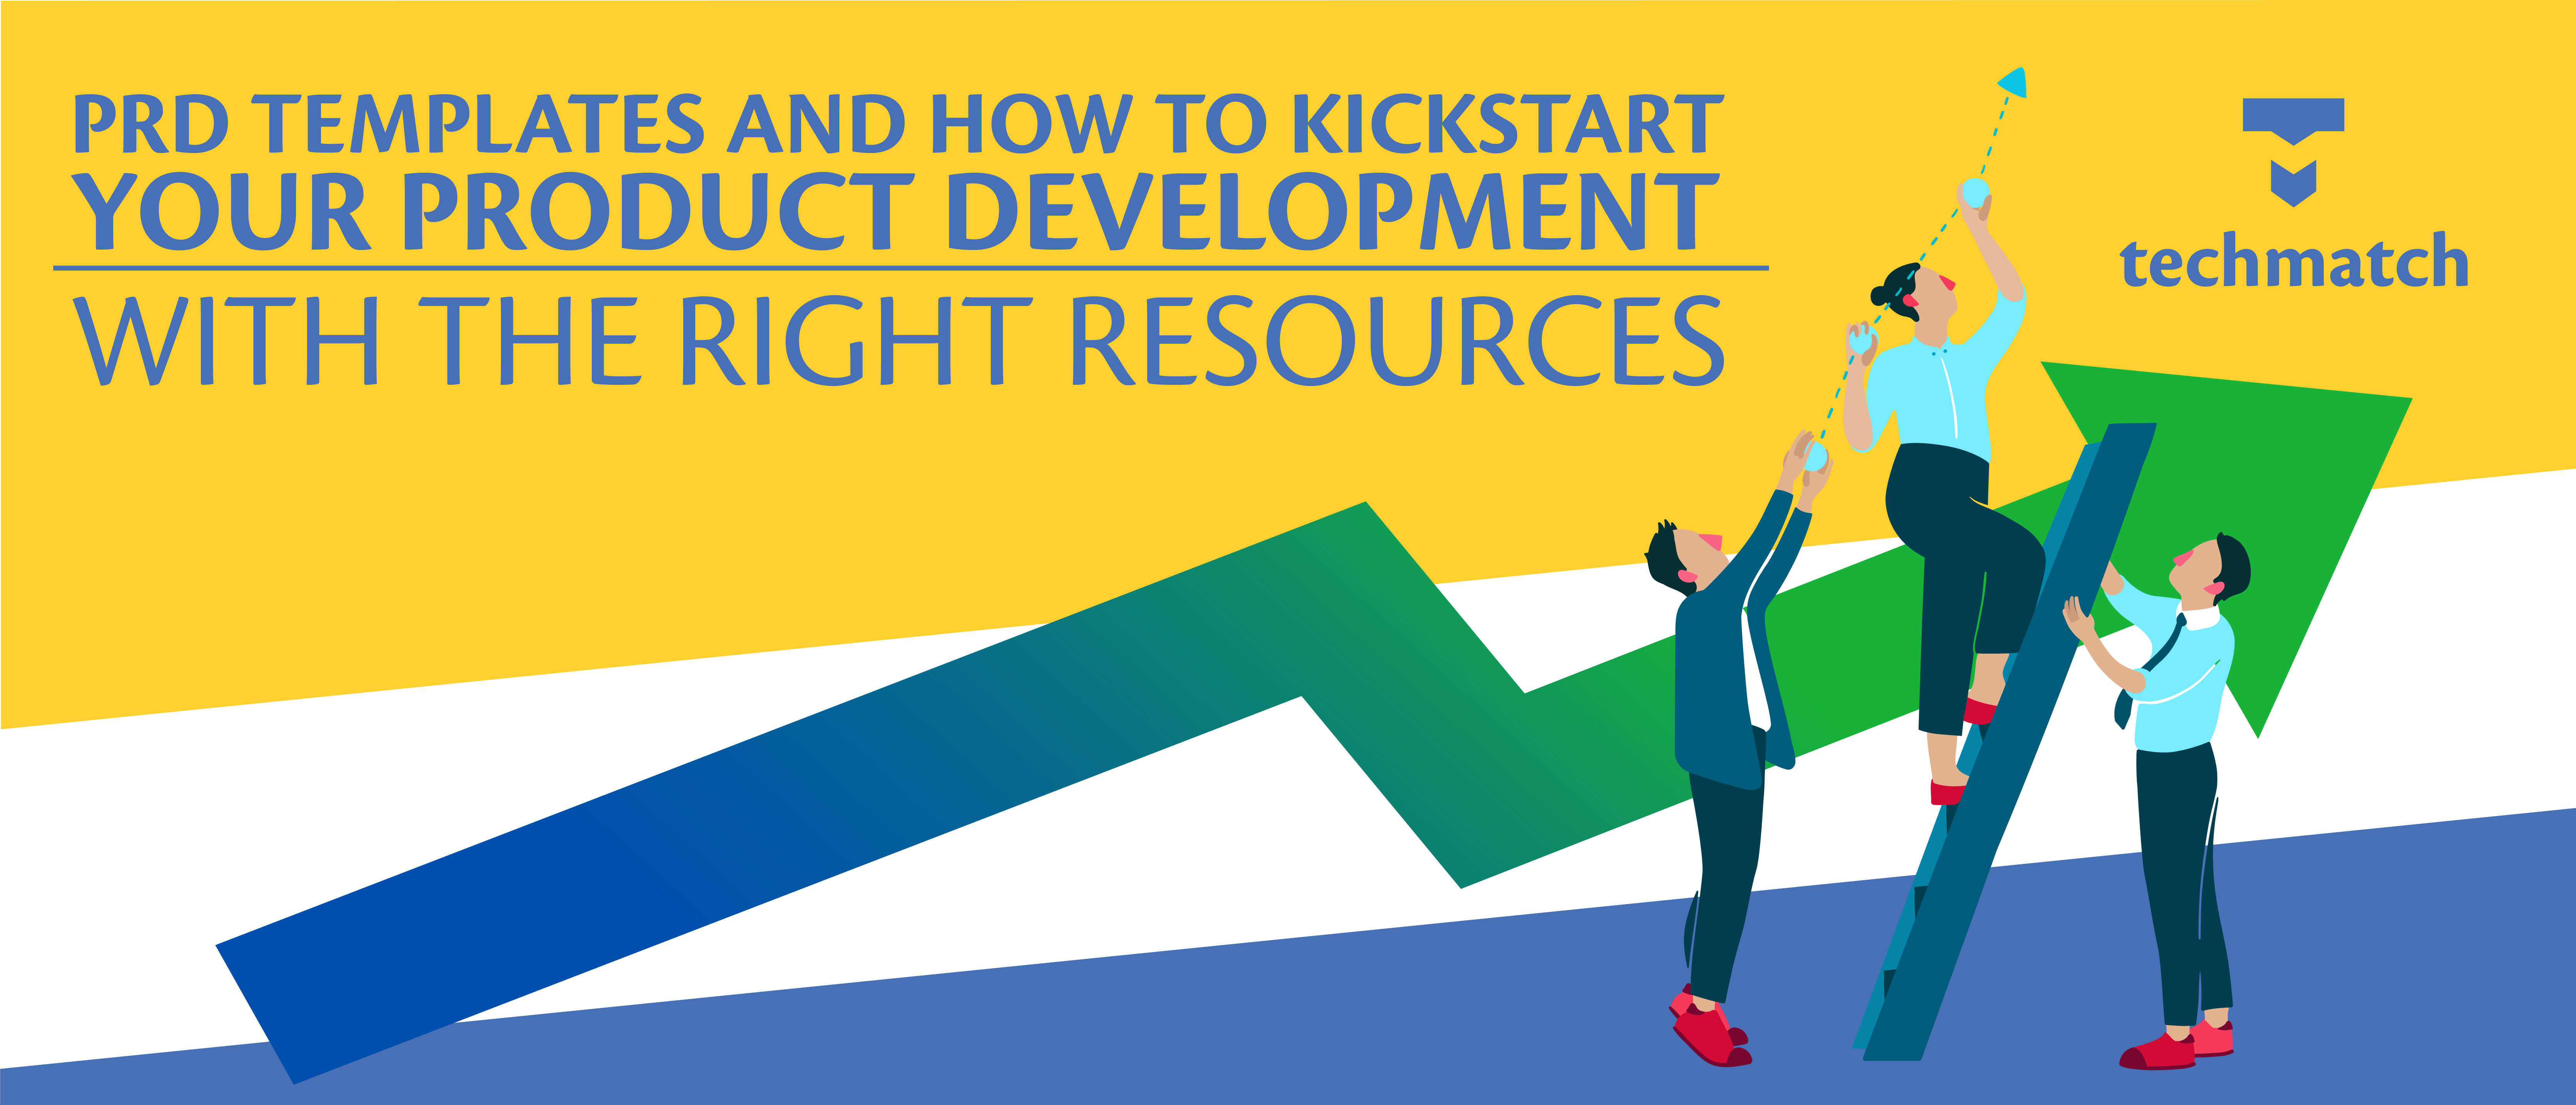 PRD Templates and How To Kickstart Your Product Development With The Right Resources